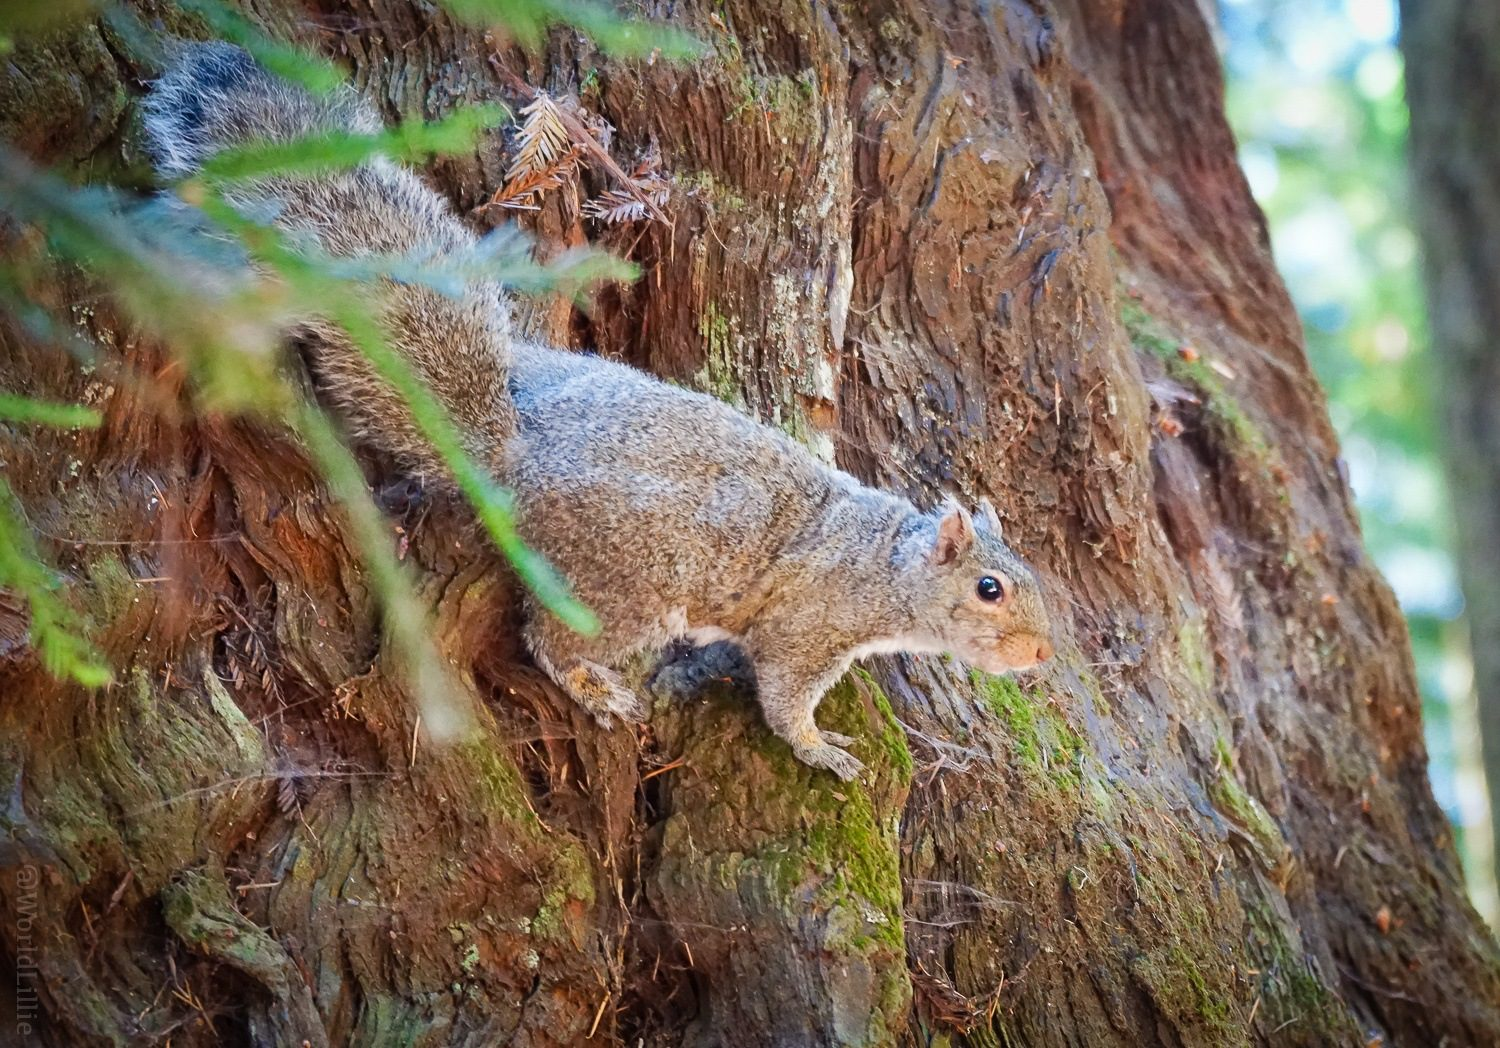 The squirrel eyed us from his perch high on the trunk.